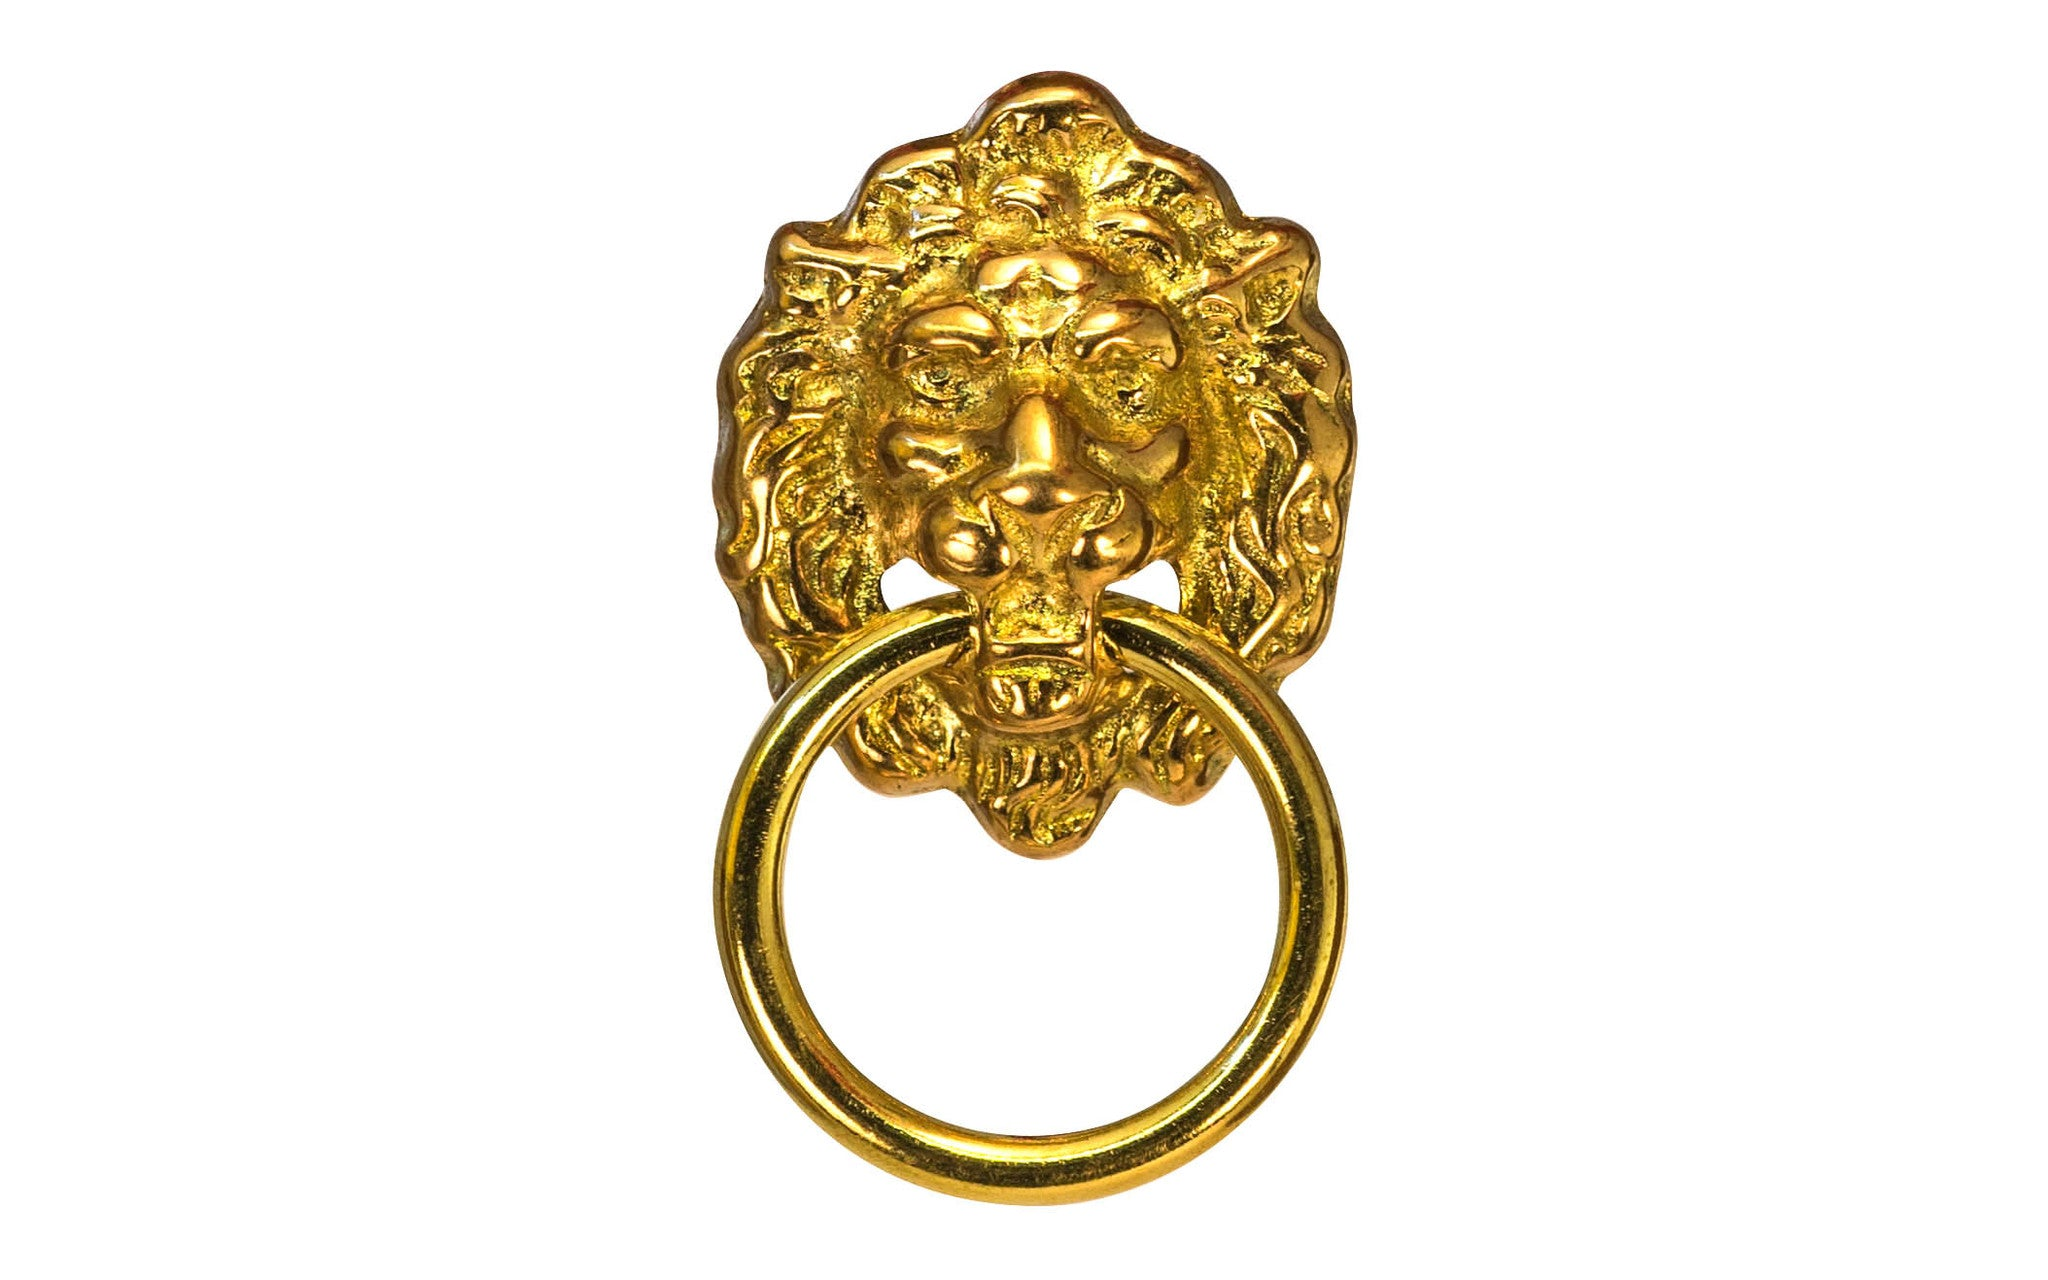 Solid Brass Lion Head Ring Pull ~ Non-Lacquered Brass (will patina naturally over time)